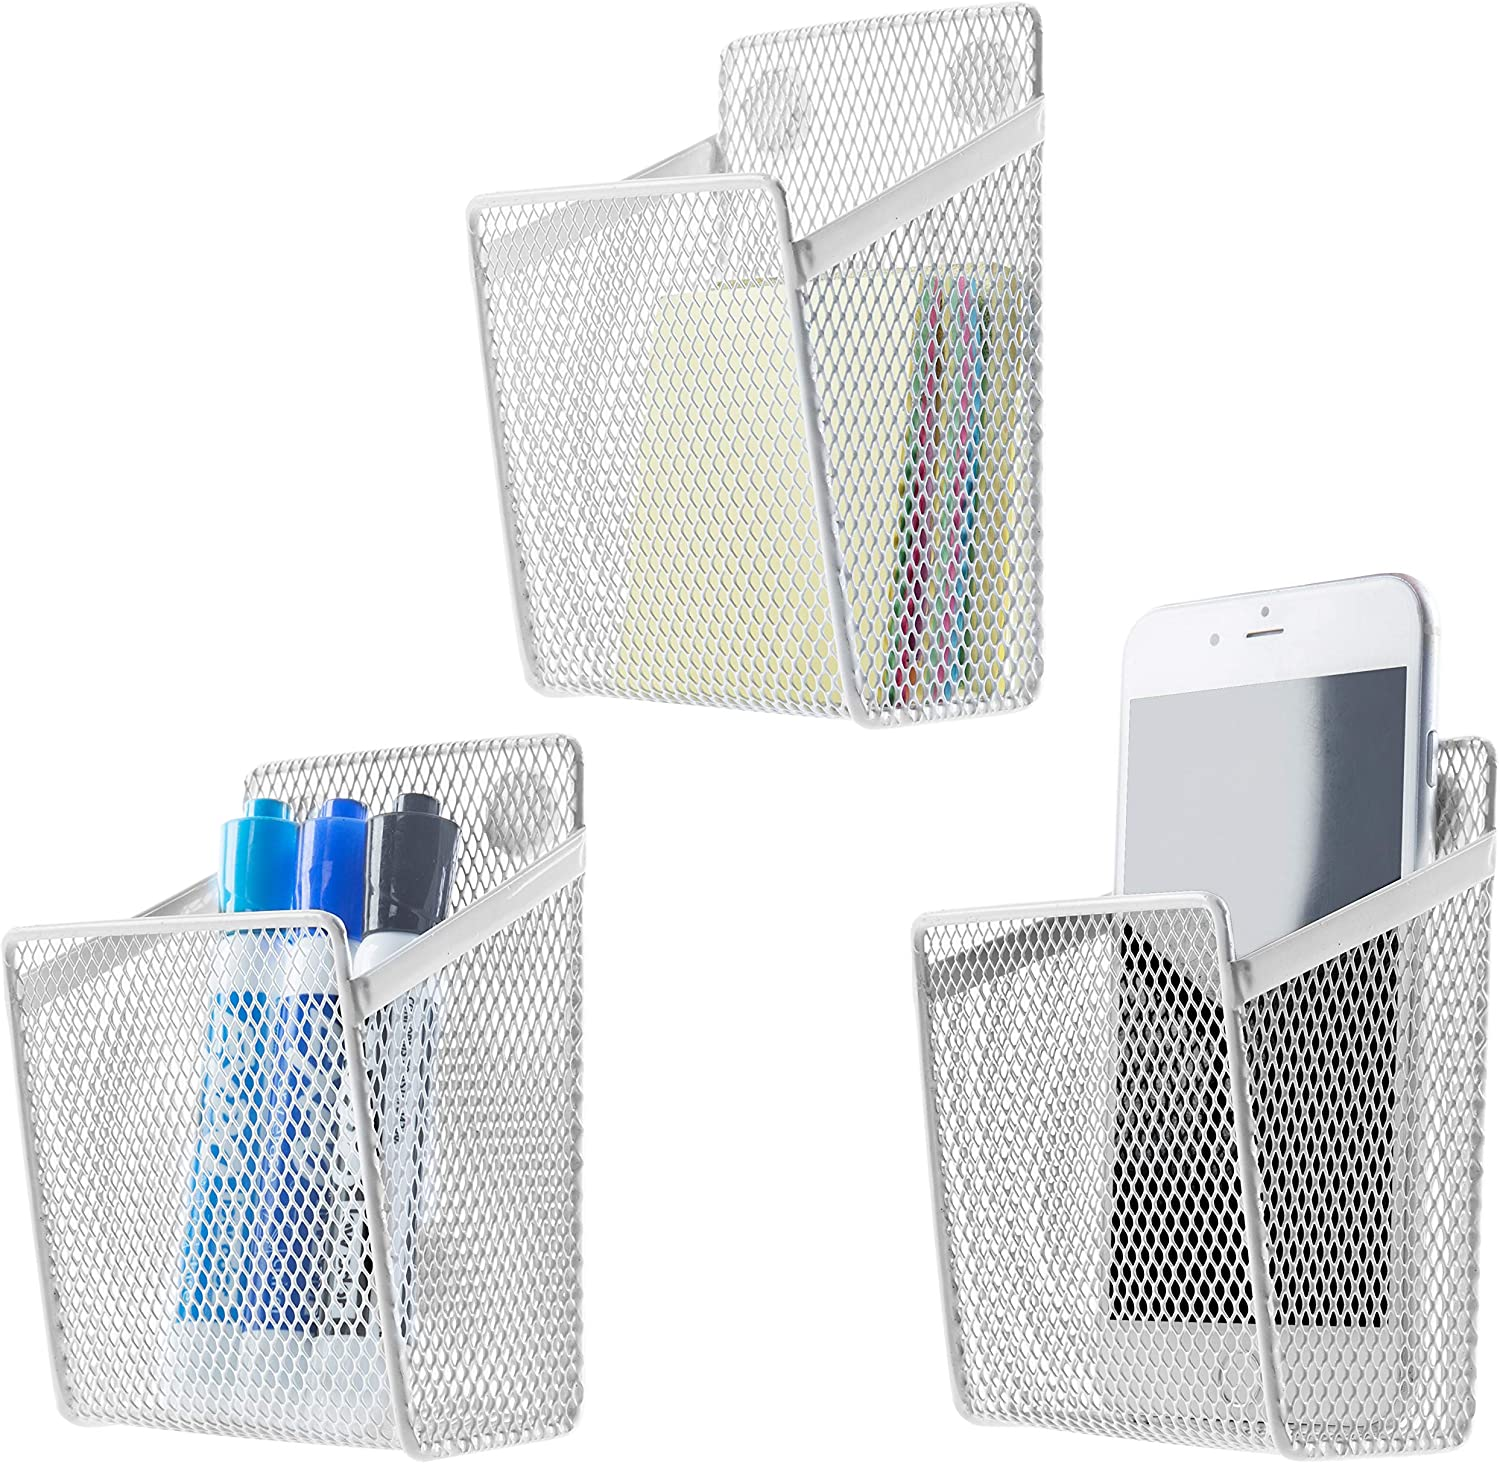 MyGift White Wire Mesh Magnetic Storage Baskets, Office Supply Organizers, Set of 3